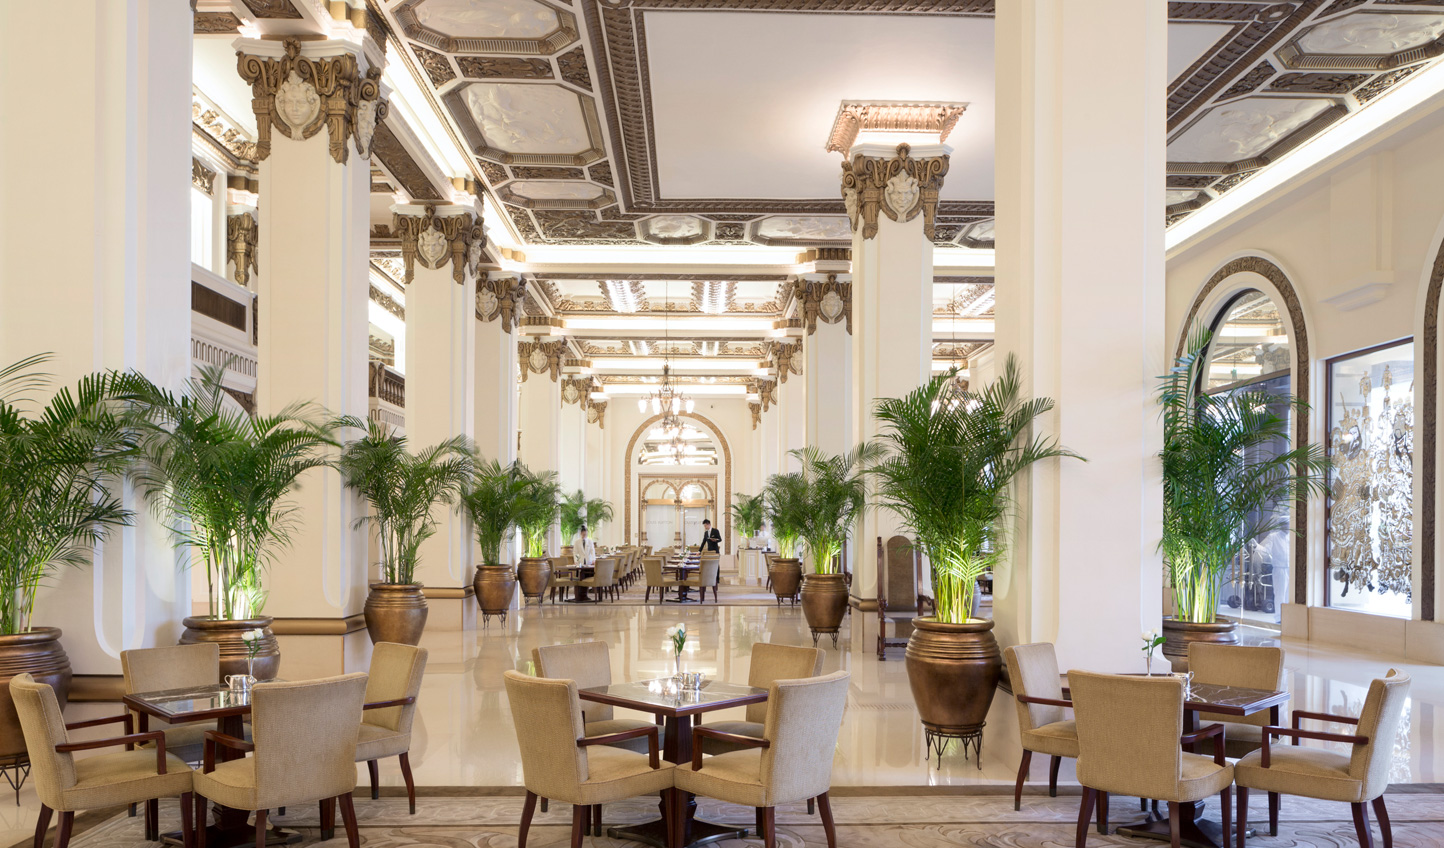 The moment you step into The Peninsula, you are enveloped in luxury